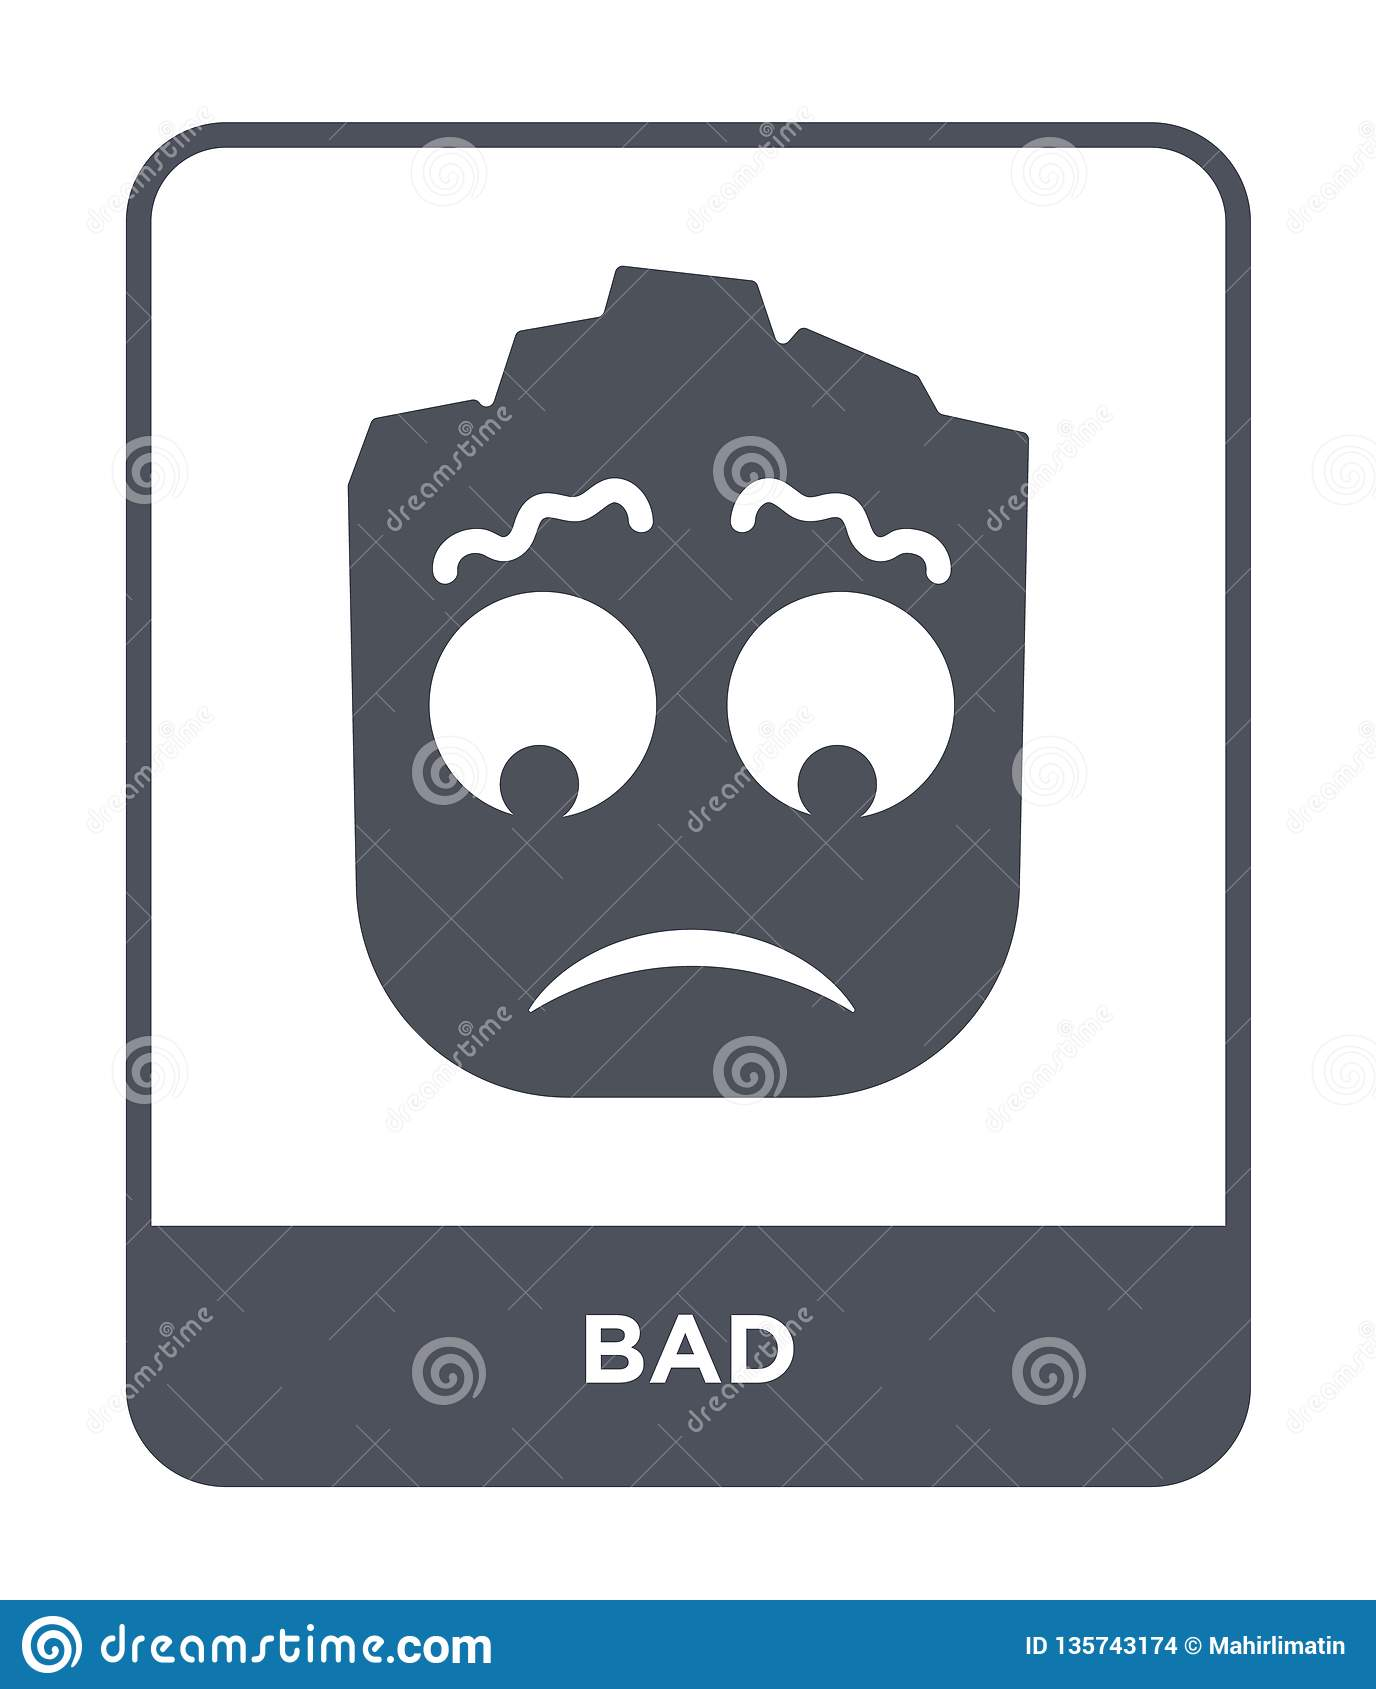 bad icon in trendy design style. bad icon isolated on white background. bad vector icon simple and modern flat symbol for web site